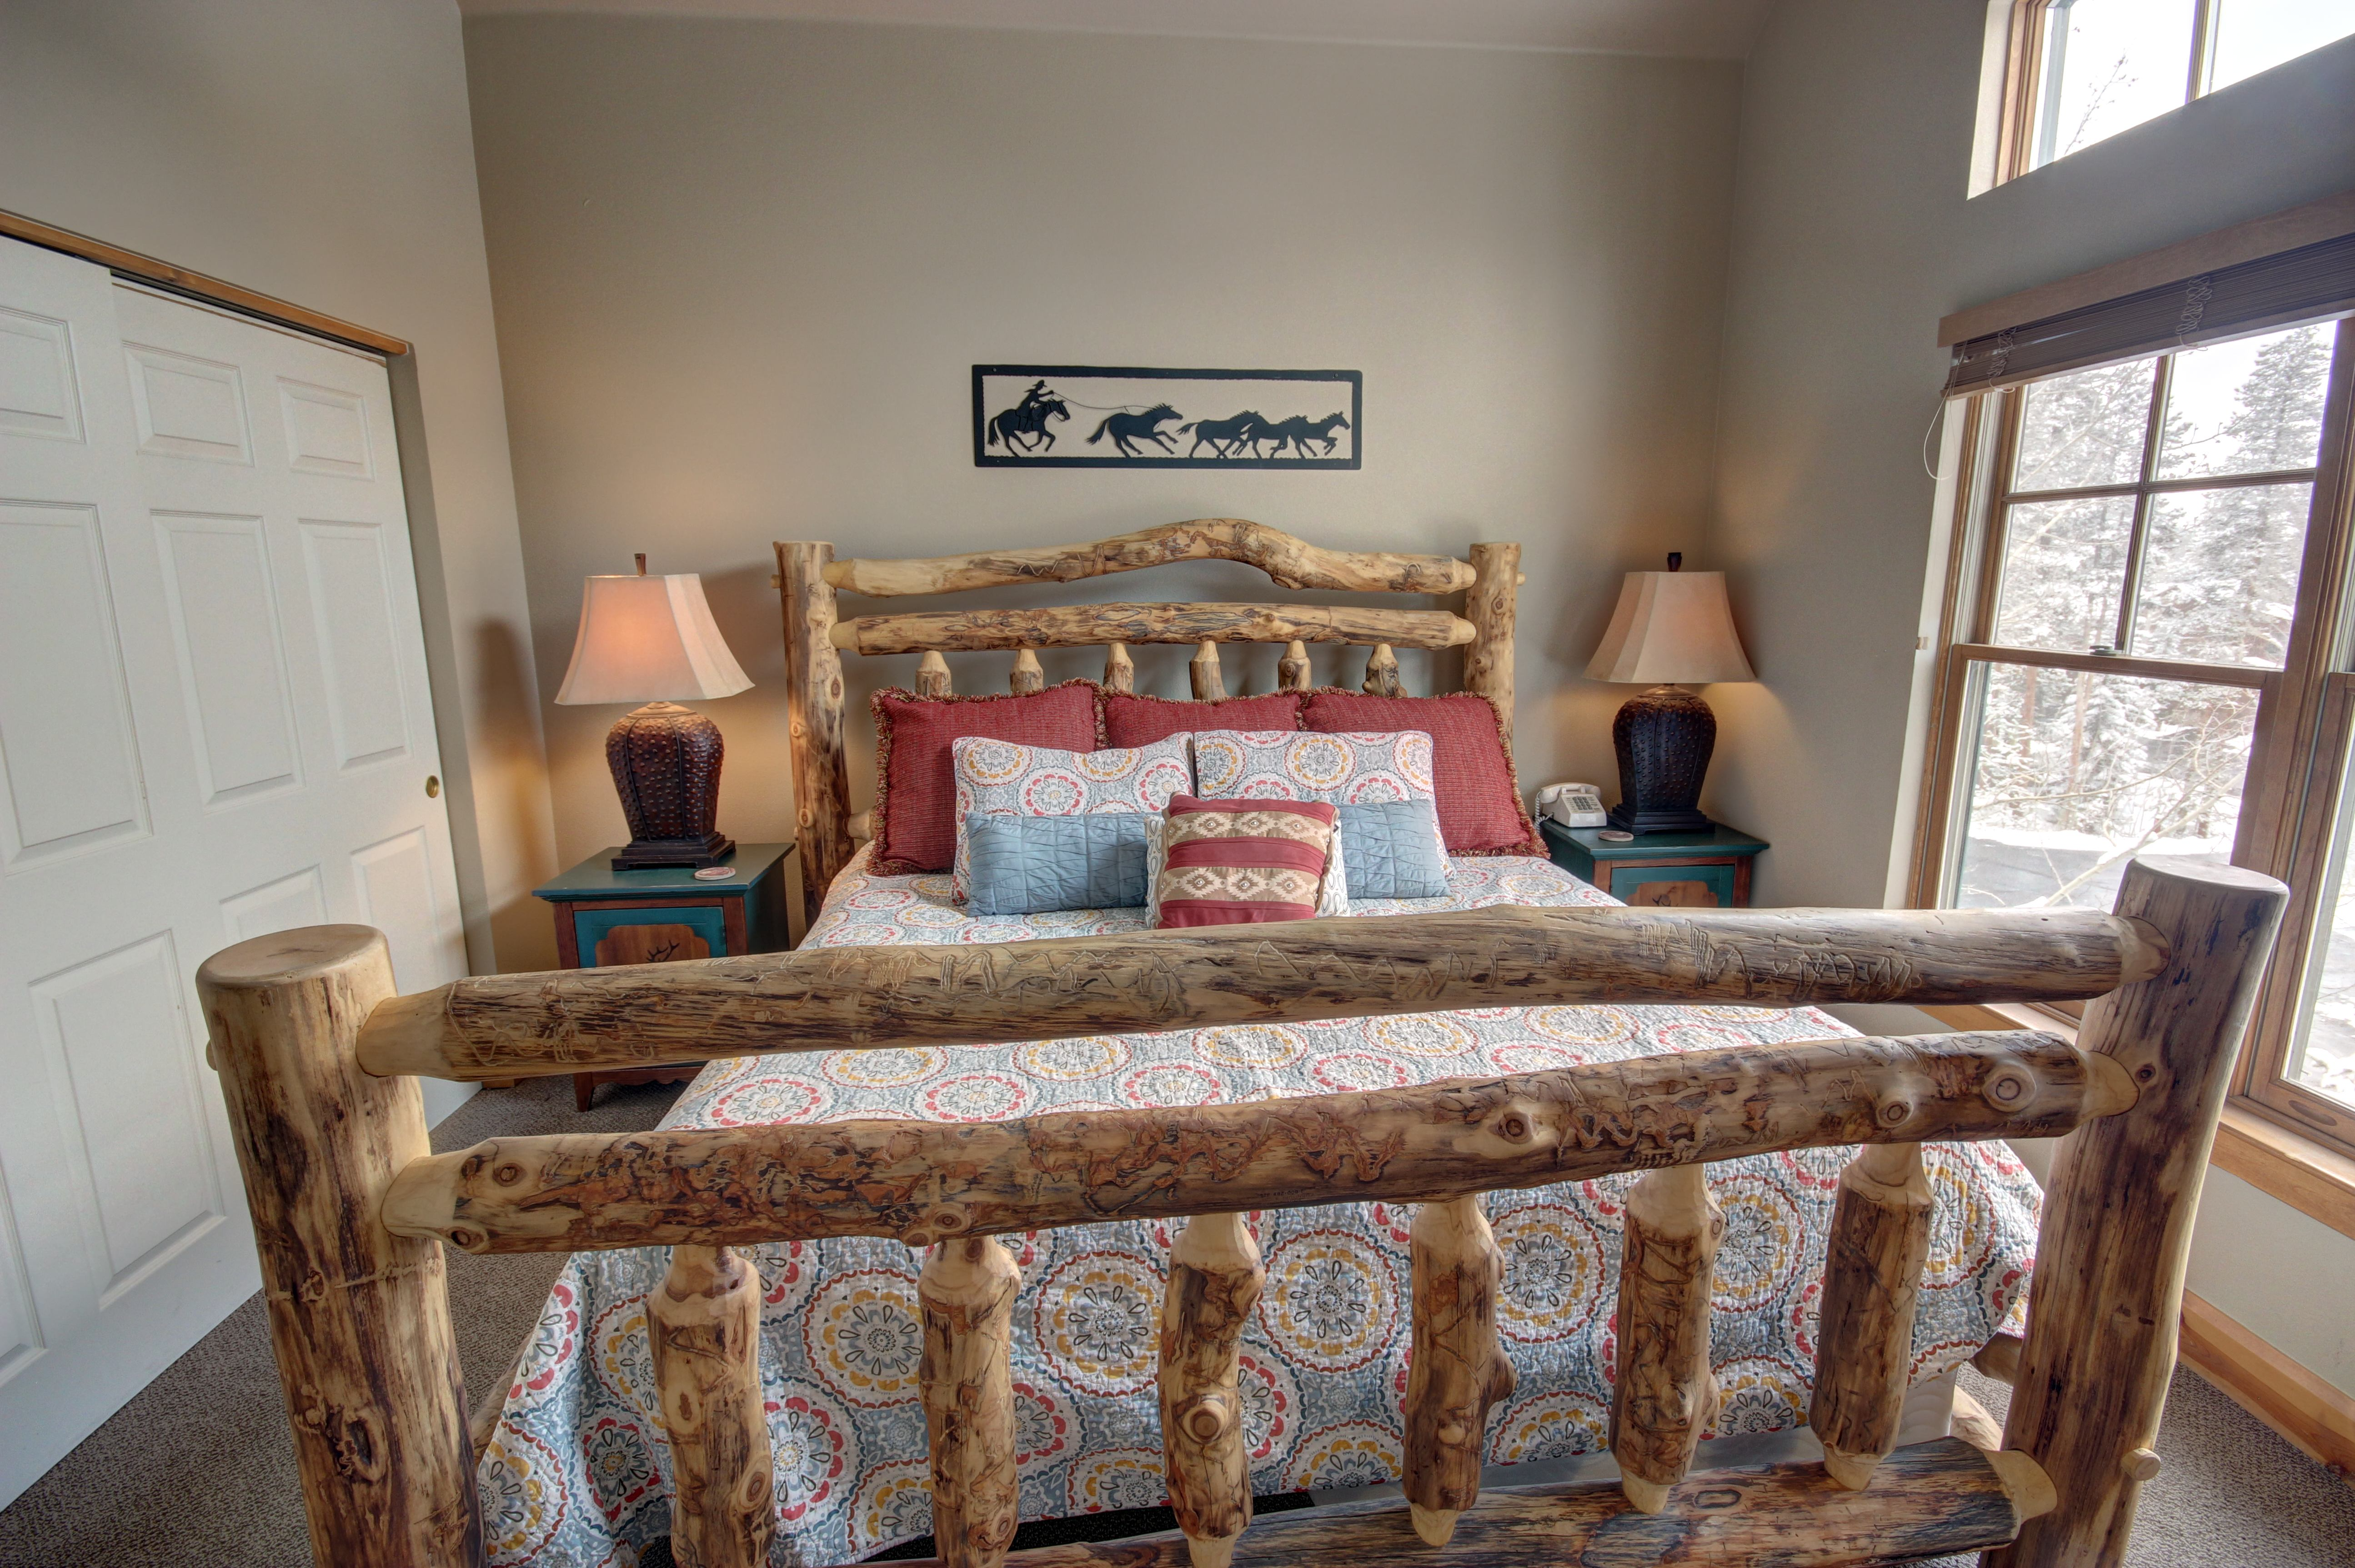 Bed with splashes of amazing color